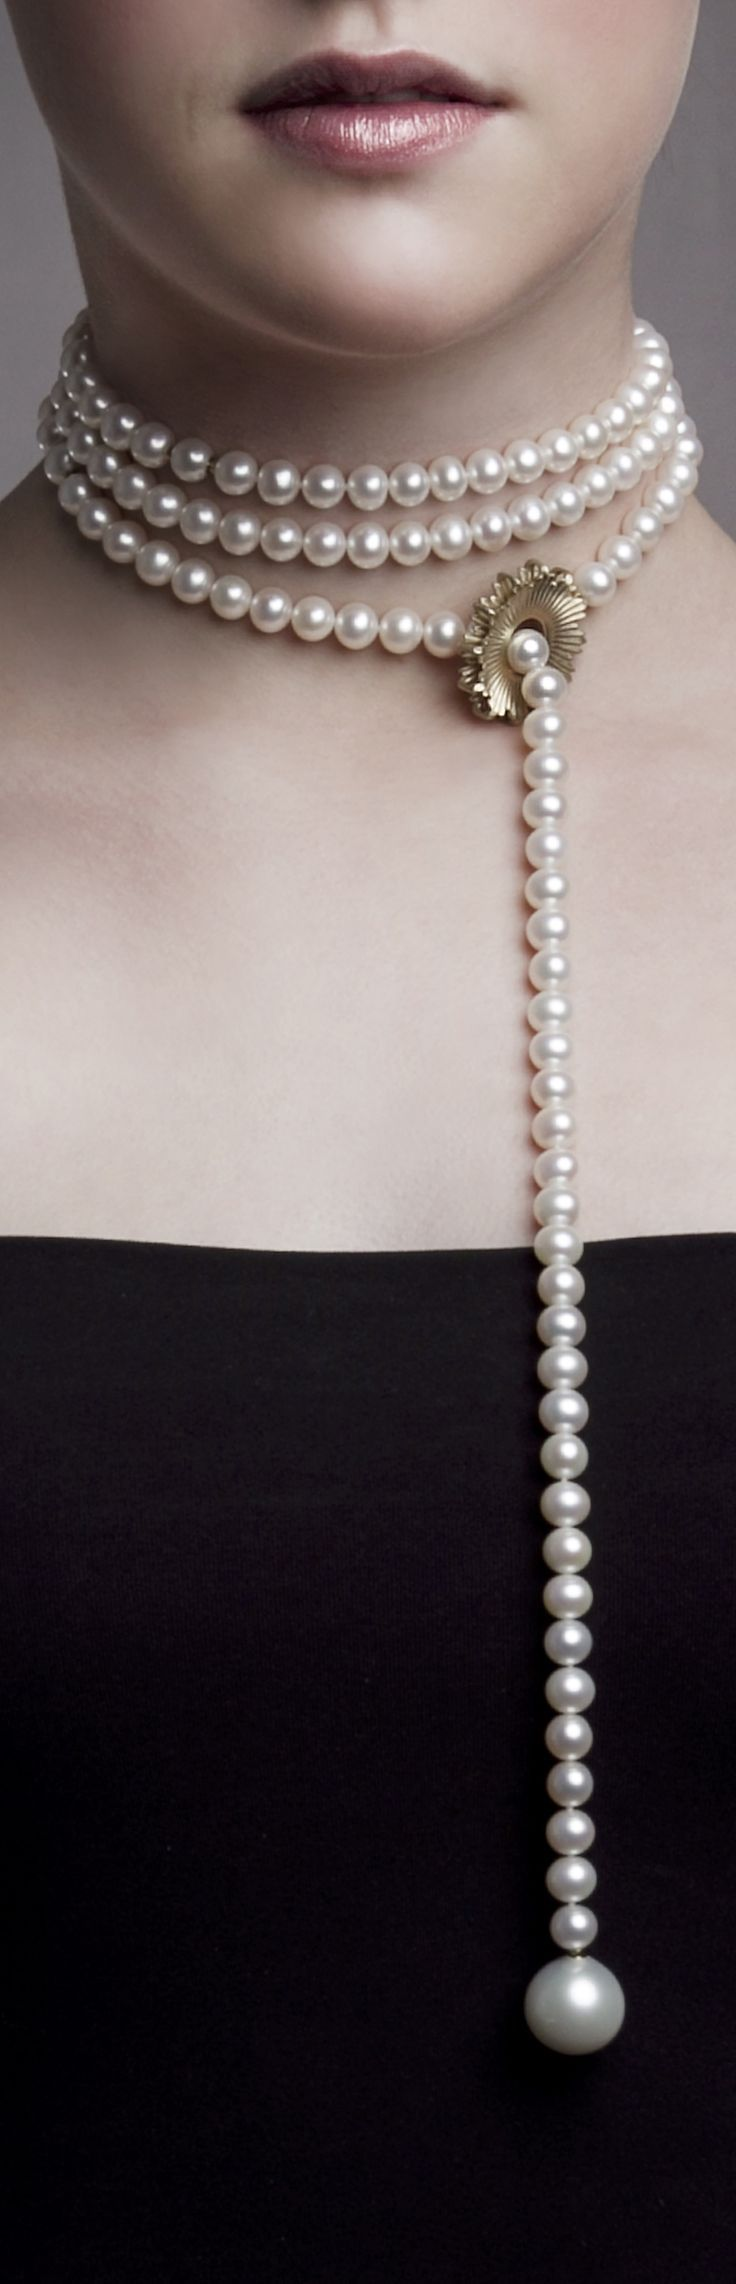 "Necklace | Emquies-Holstein. ""Mega Chic collection"".  Freshwater cultured pearls with 14k gold"